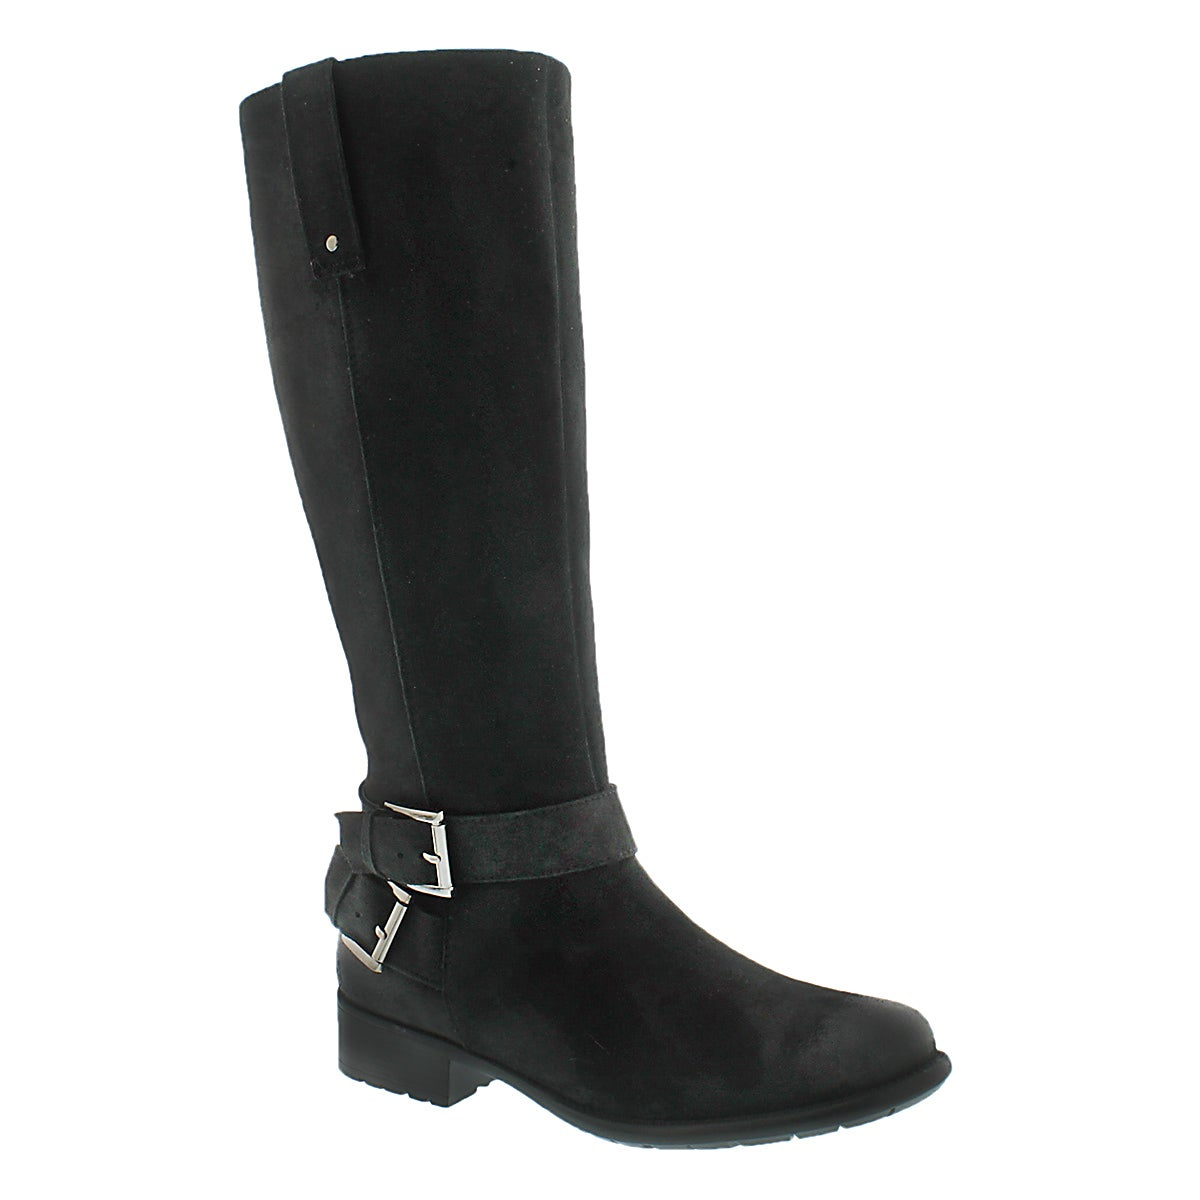 Lds Plaza Steer black tall riding boot